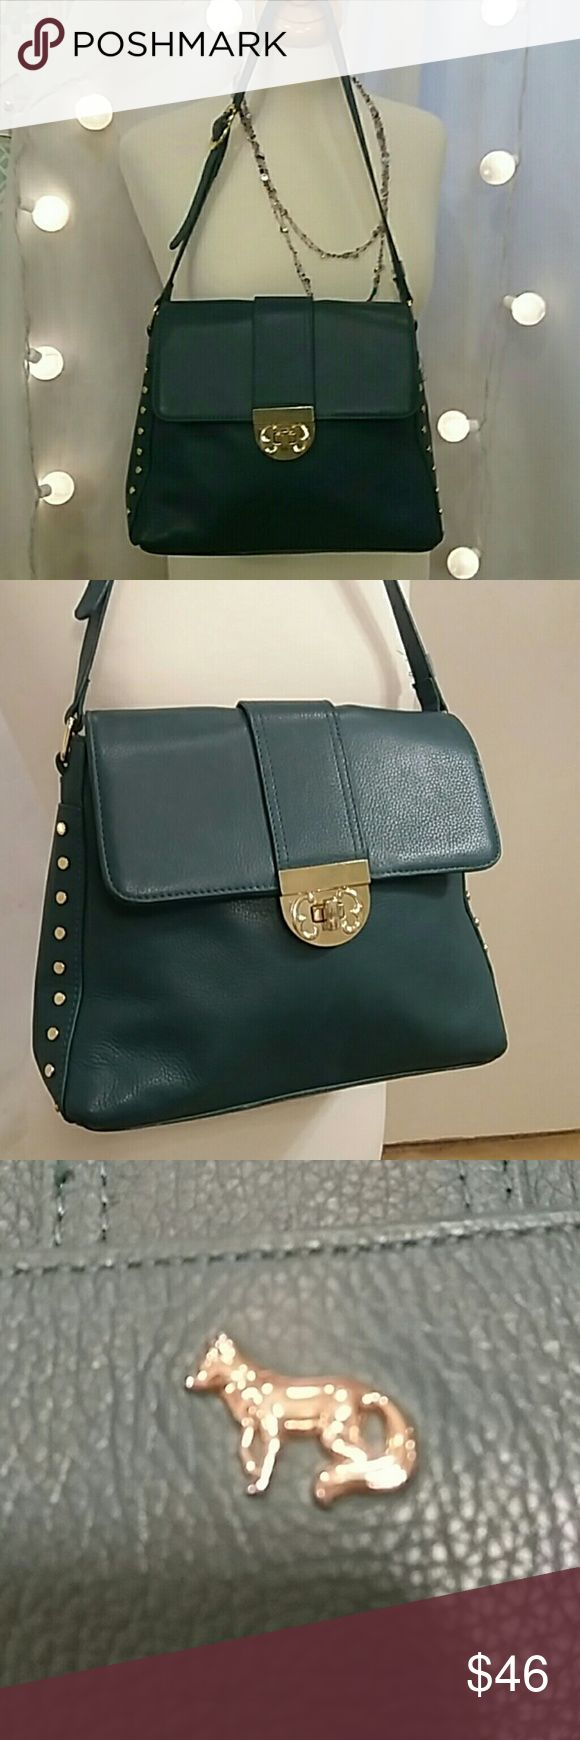 Emma Fox Green Leather Purse Excellent Condition. Looks unused. Dark green color with beautiful floral lining. Emma Fox Bags Shoulder Bags